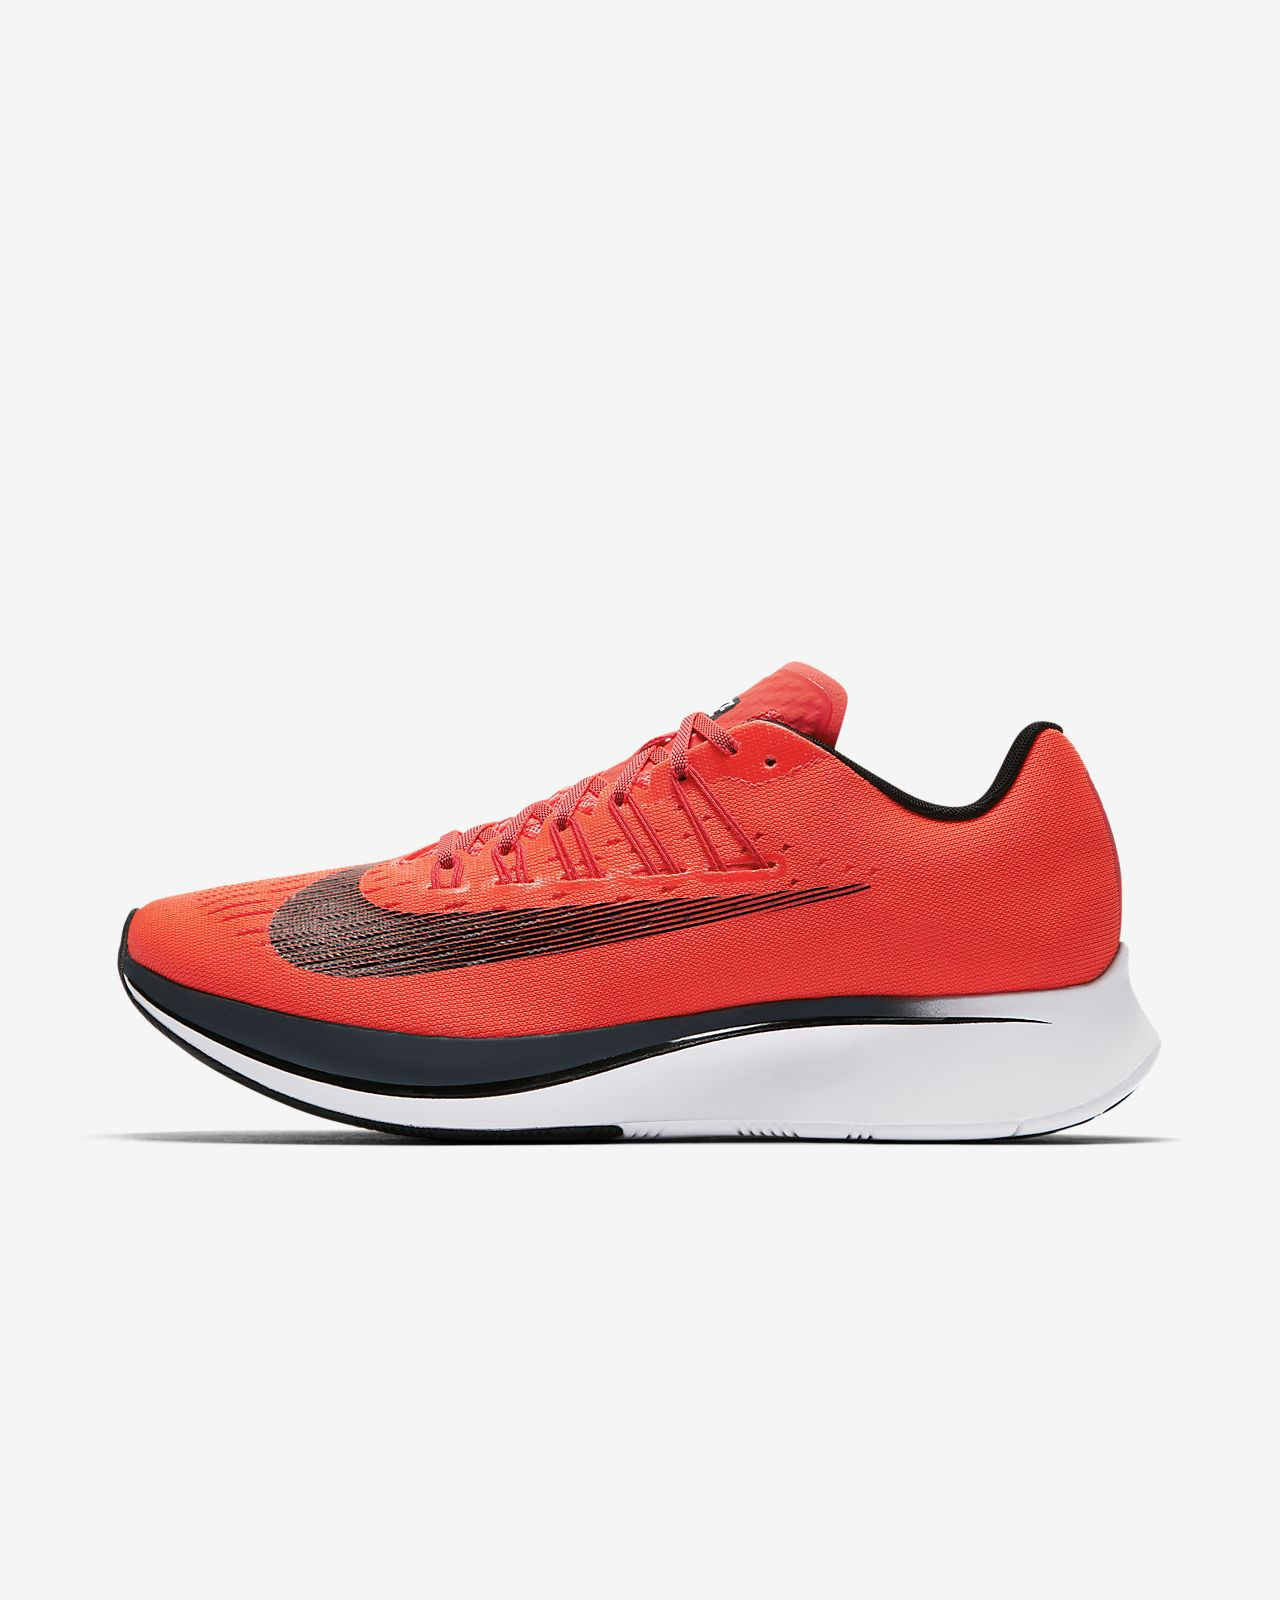 15066f22be15 Chaussure de running Nike Zoom Fly pour Homme. Nike.com CA